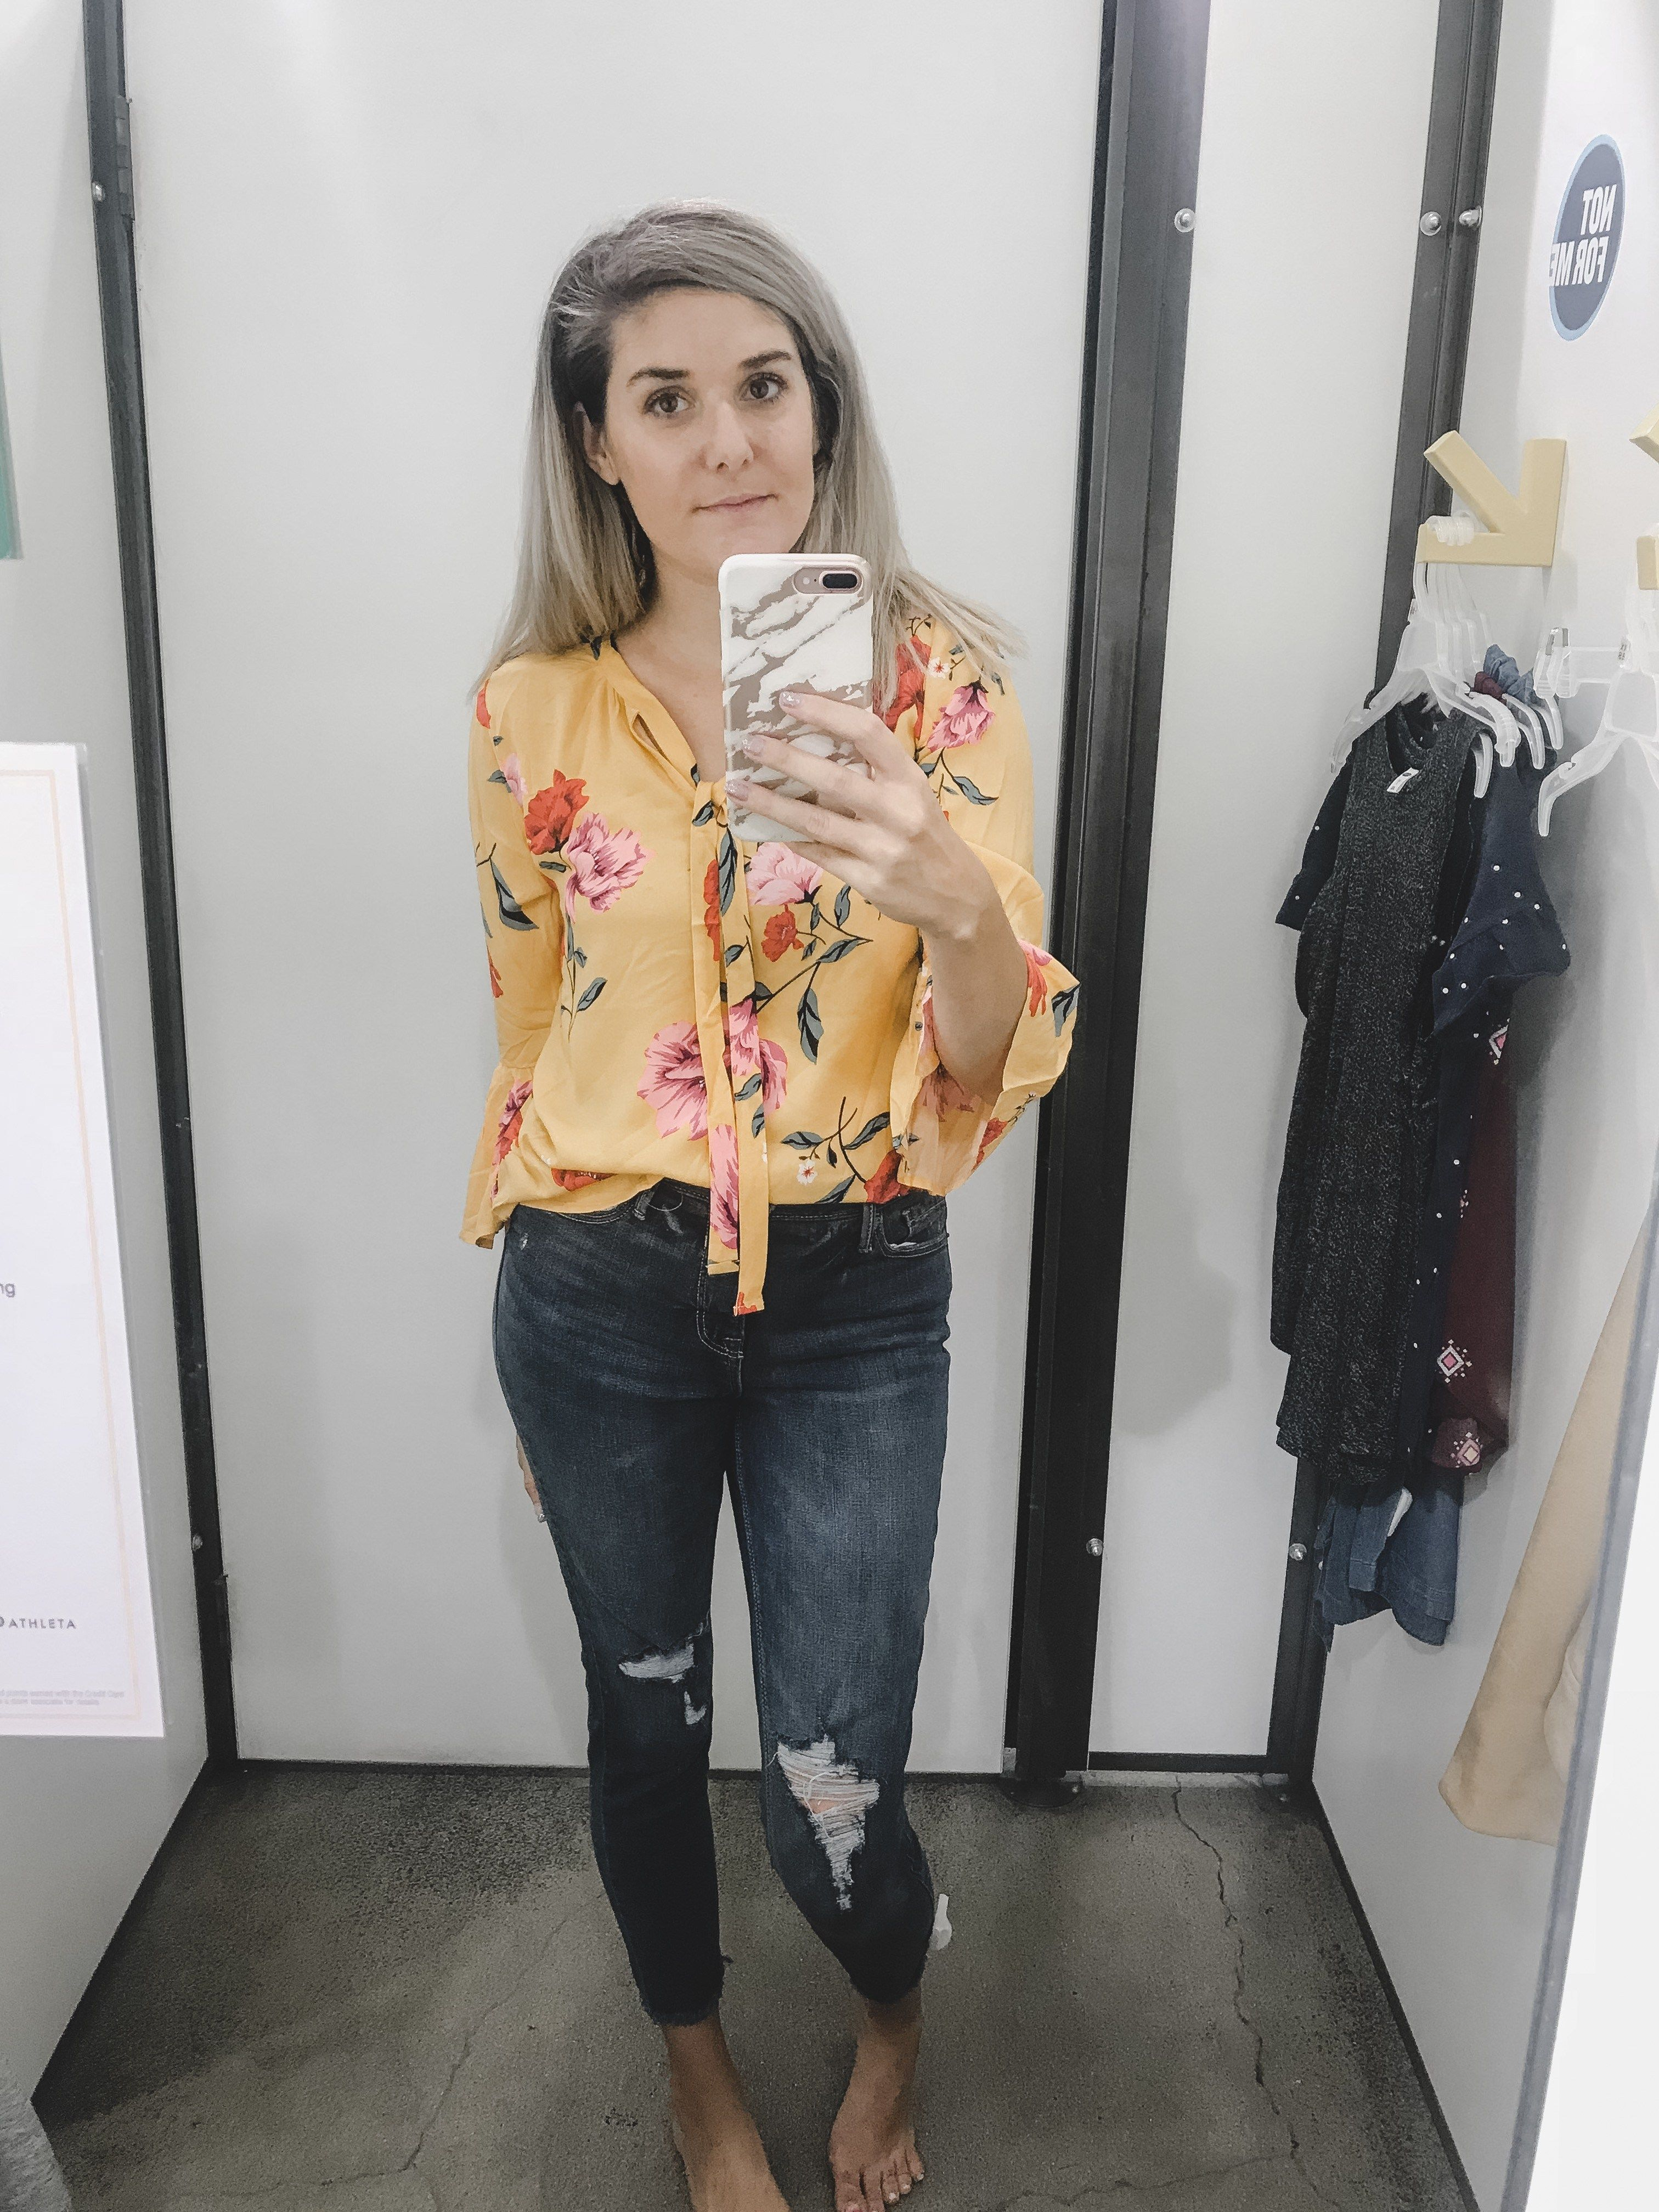 4311849999 Fitting Room Diaries- Old Navy Fall Fashion Finds. Mustard Floral Blouse  and distressed denim. Fall trend alert flroal blouse. Women s fall fashion  finds.